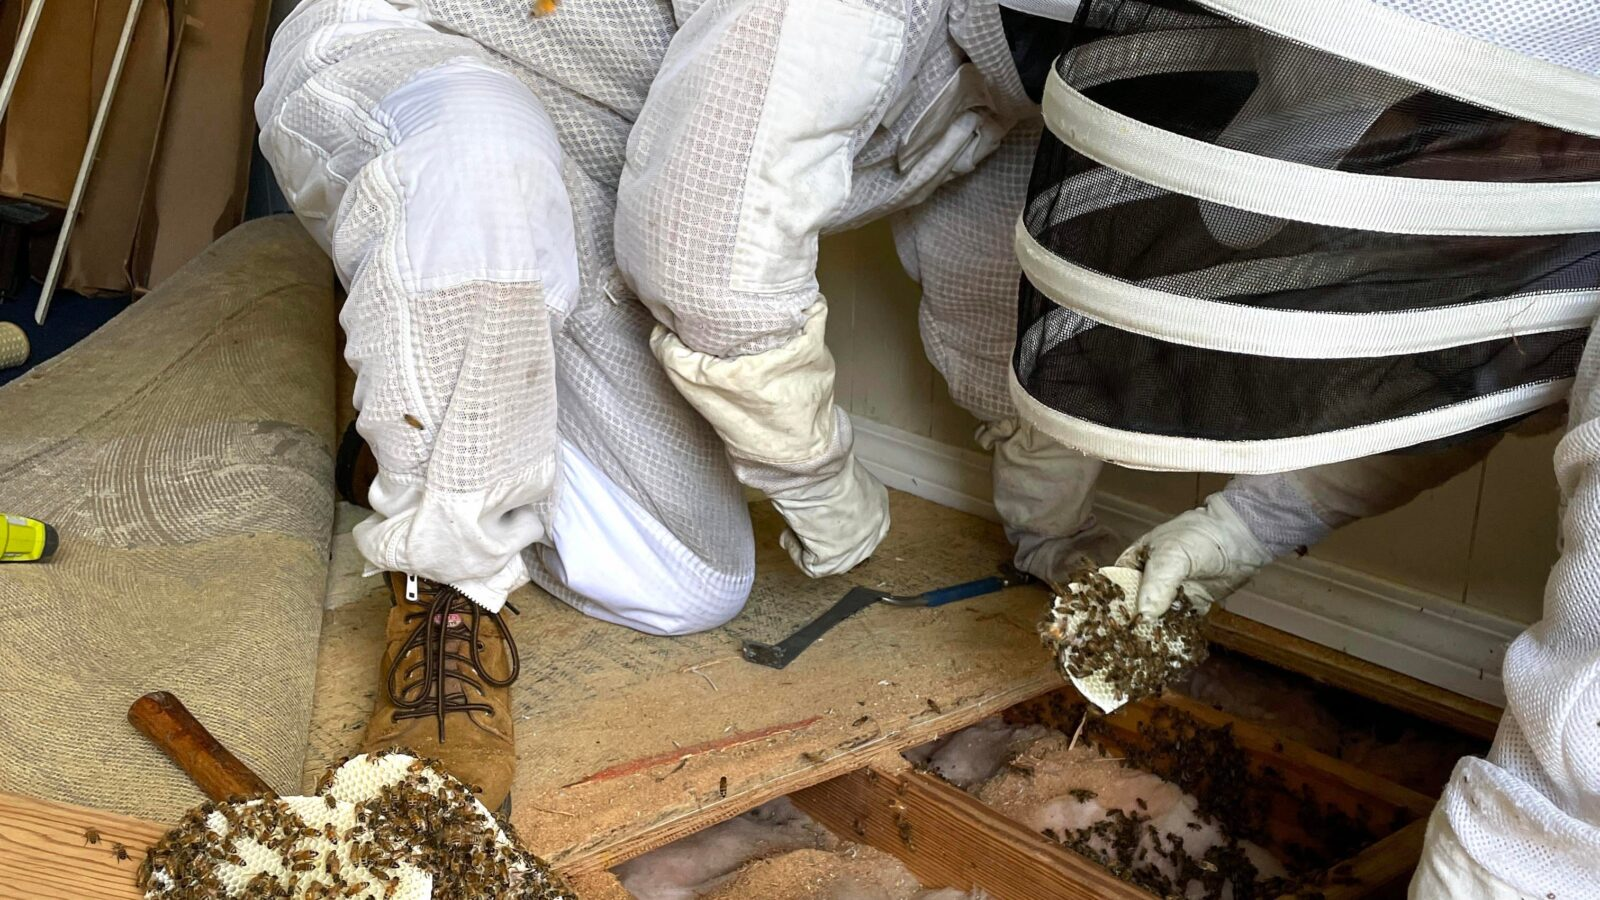 Steve's Beez: Saving honey bees one hive at a time in Okaloosa, Walton County